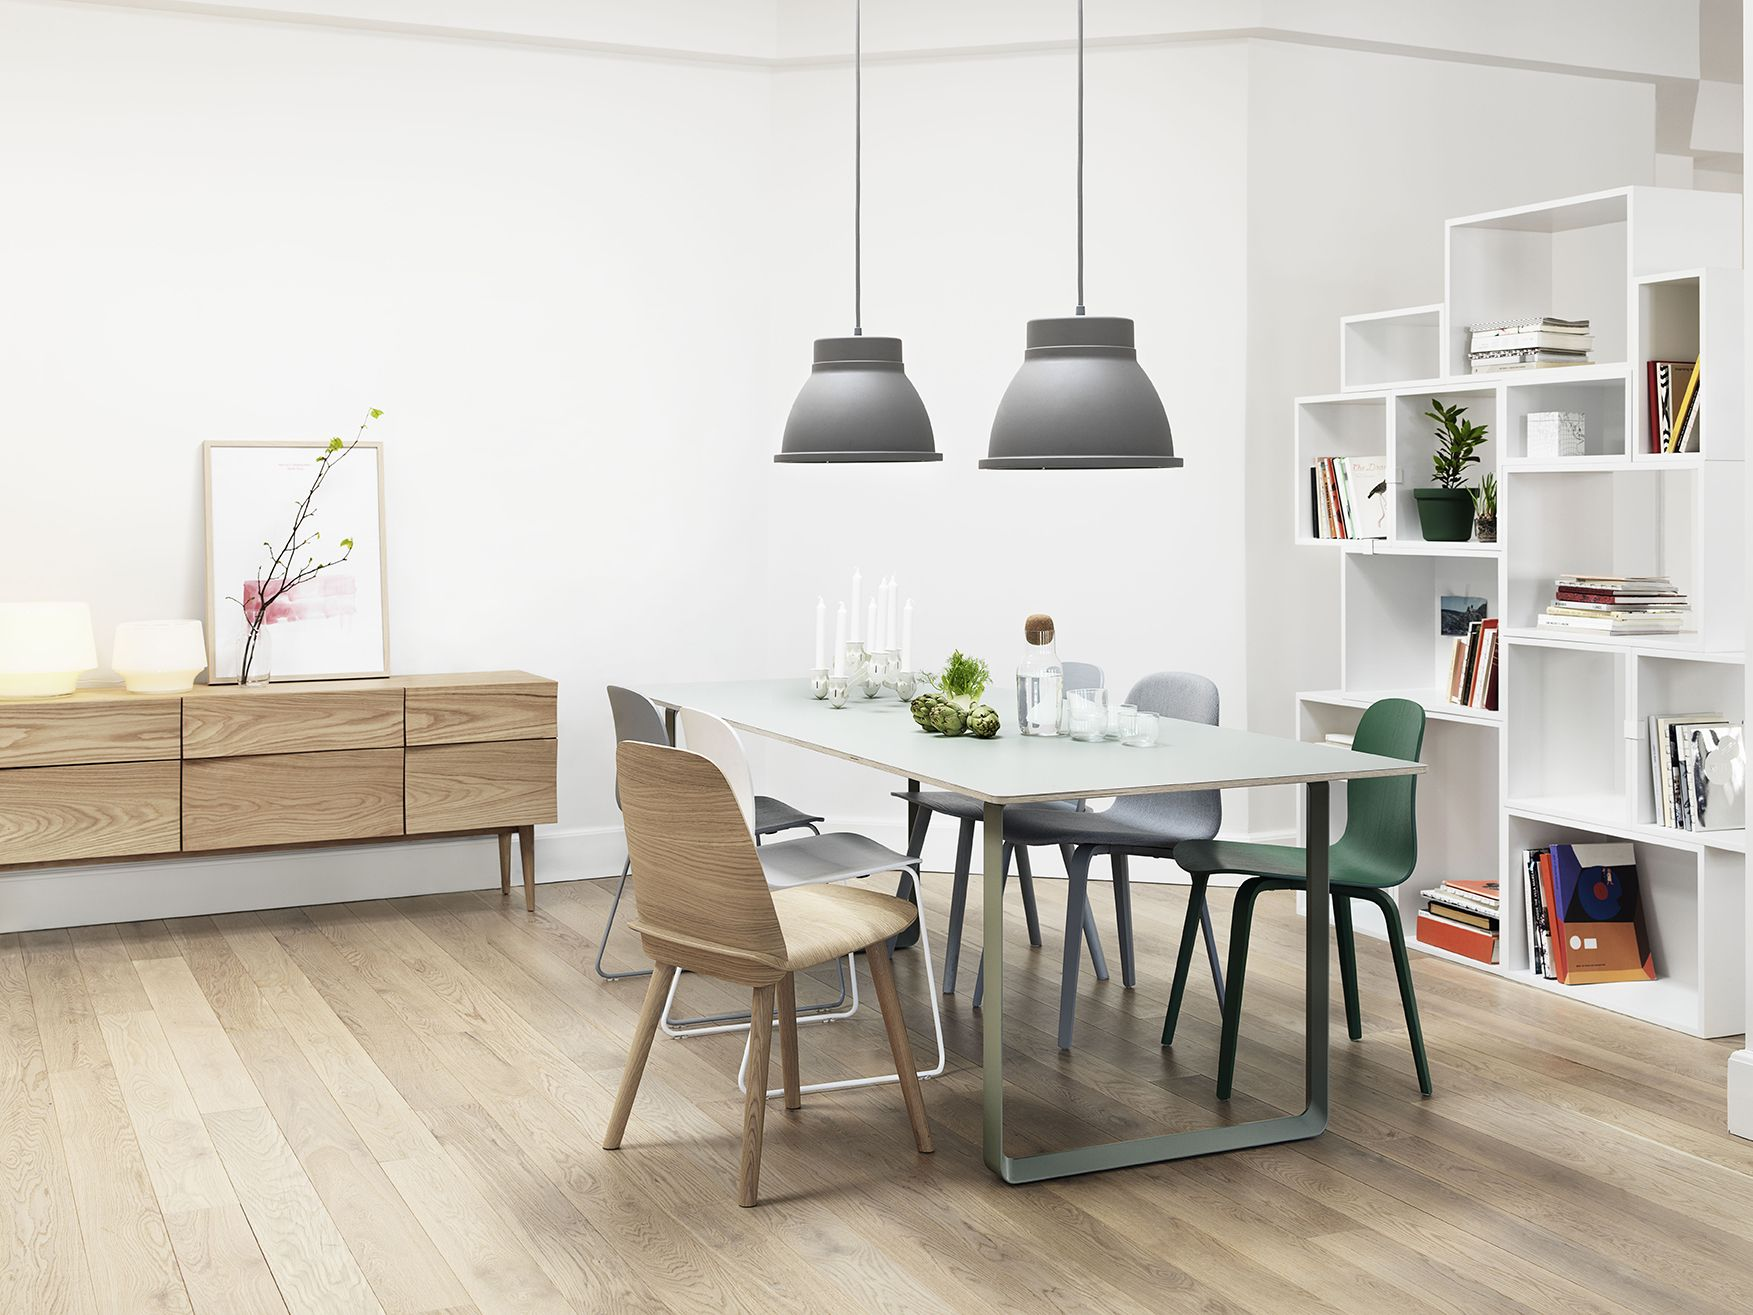 Muuto A New Perspective On Scandinavian Design